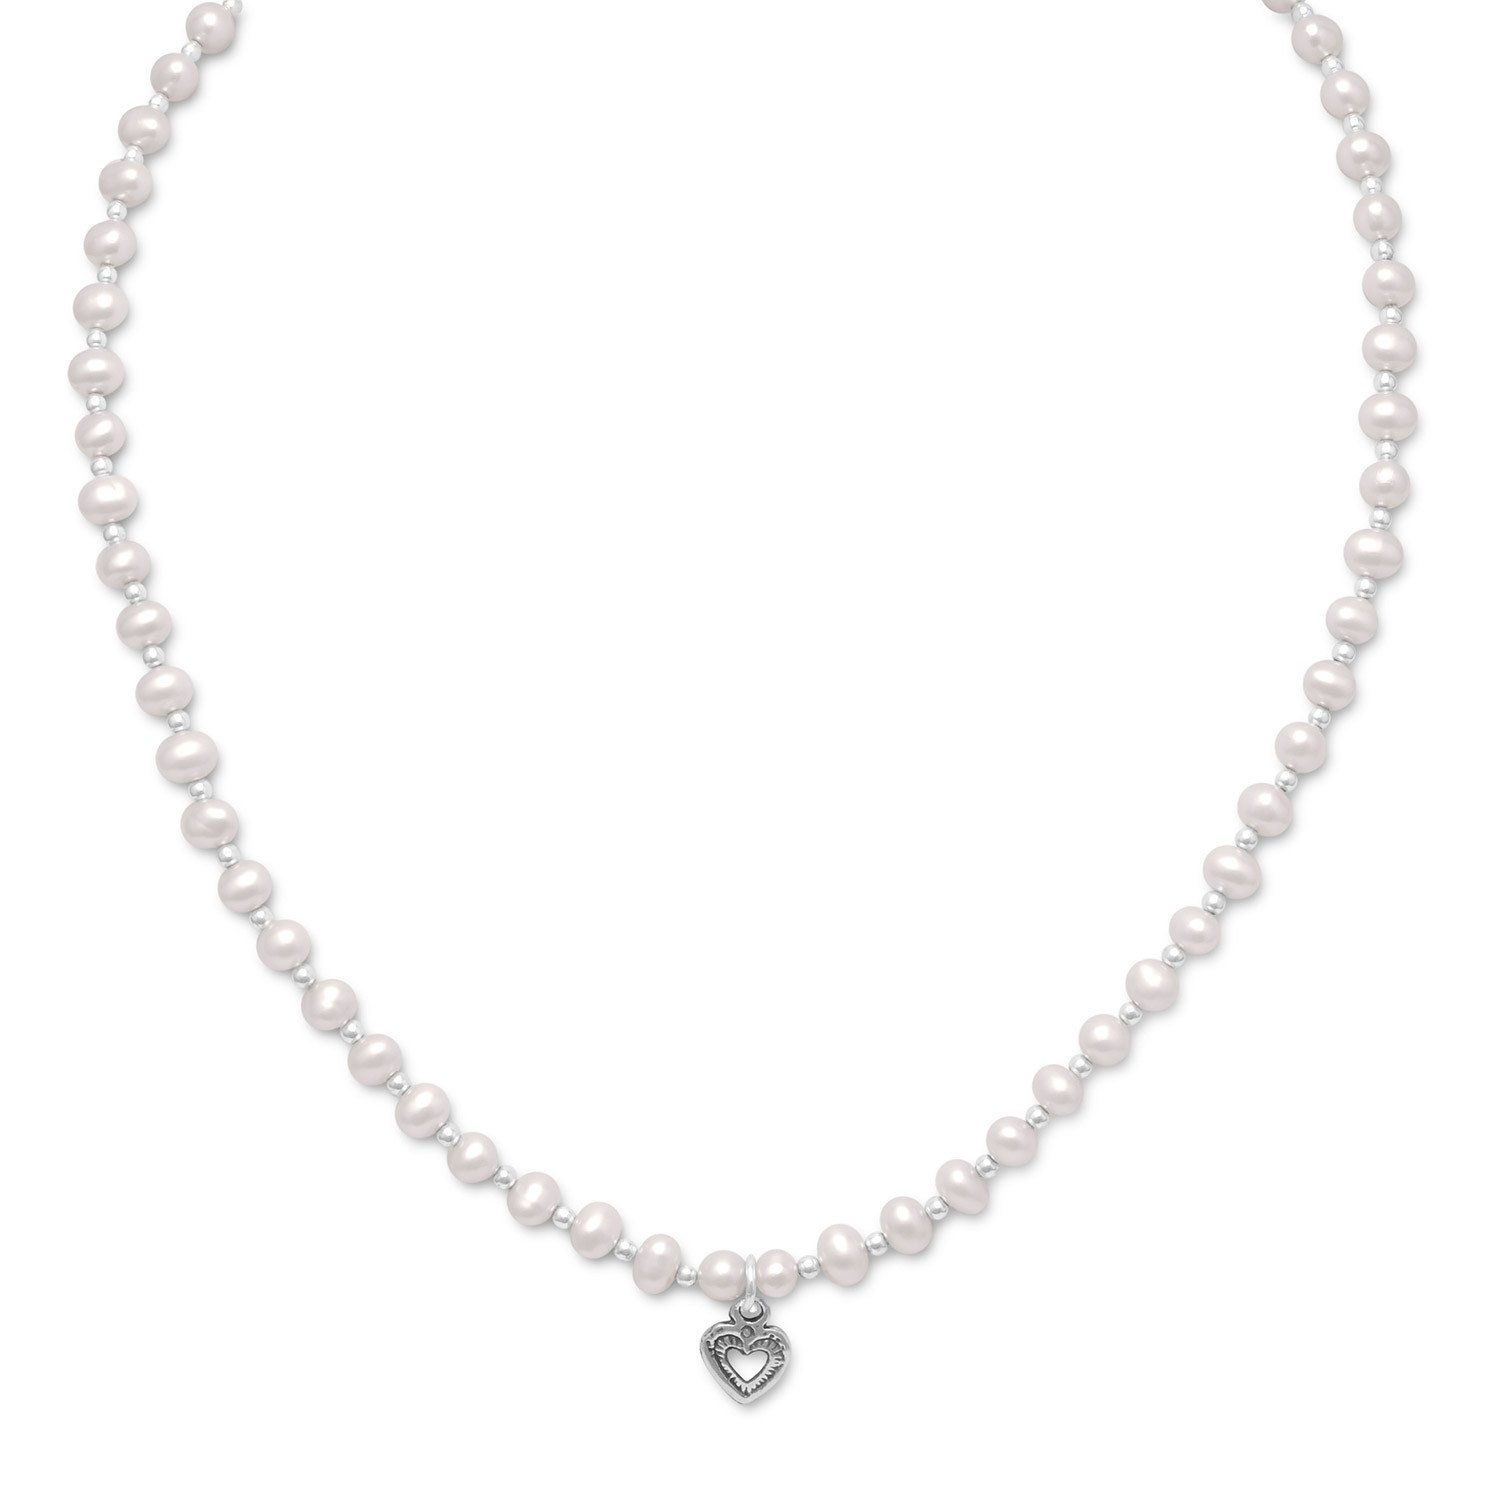 13″+2″ Extension Cultured Freshwater Pearl/Silver Bead Necklace with Oxidized Heart